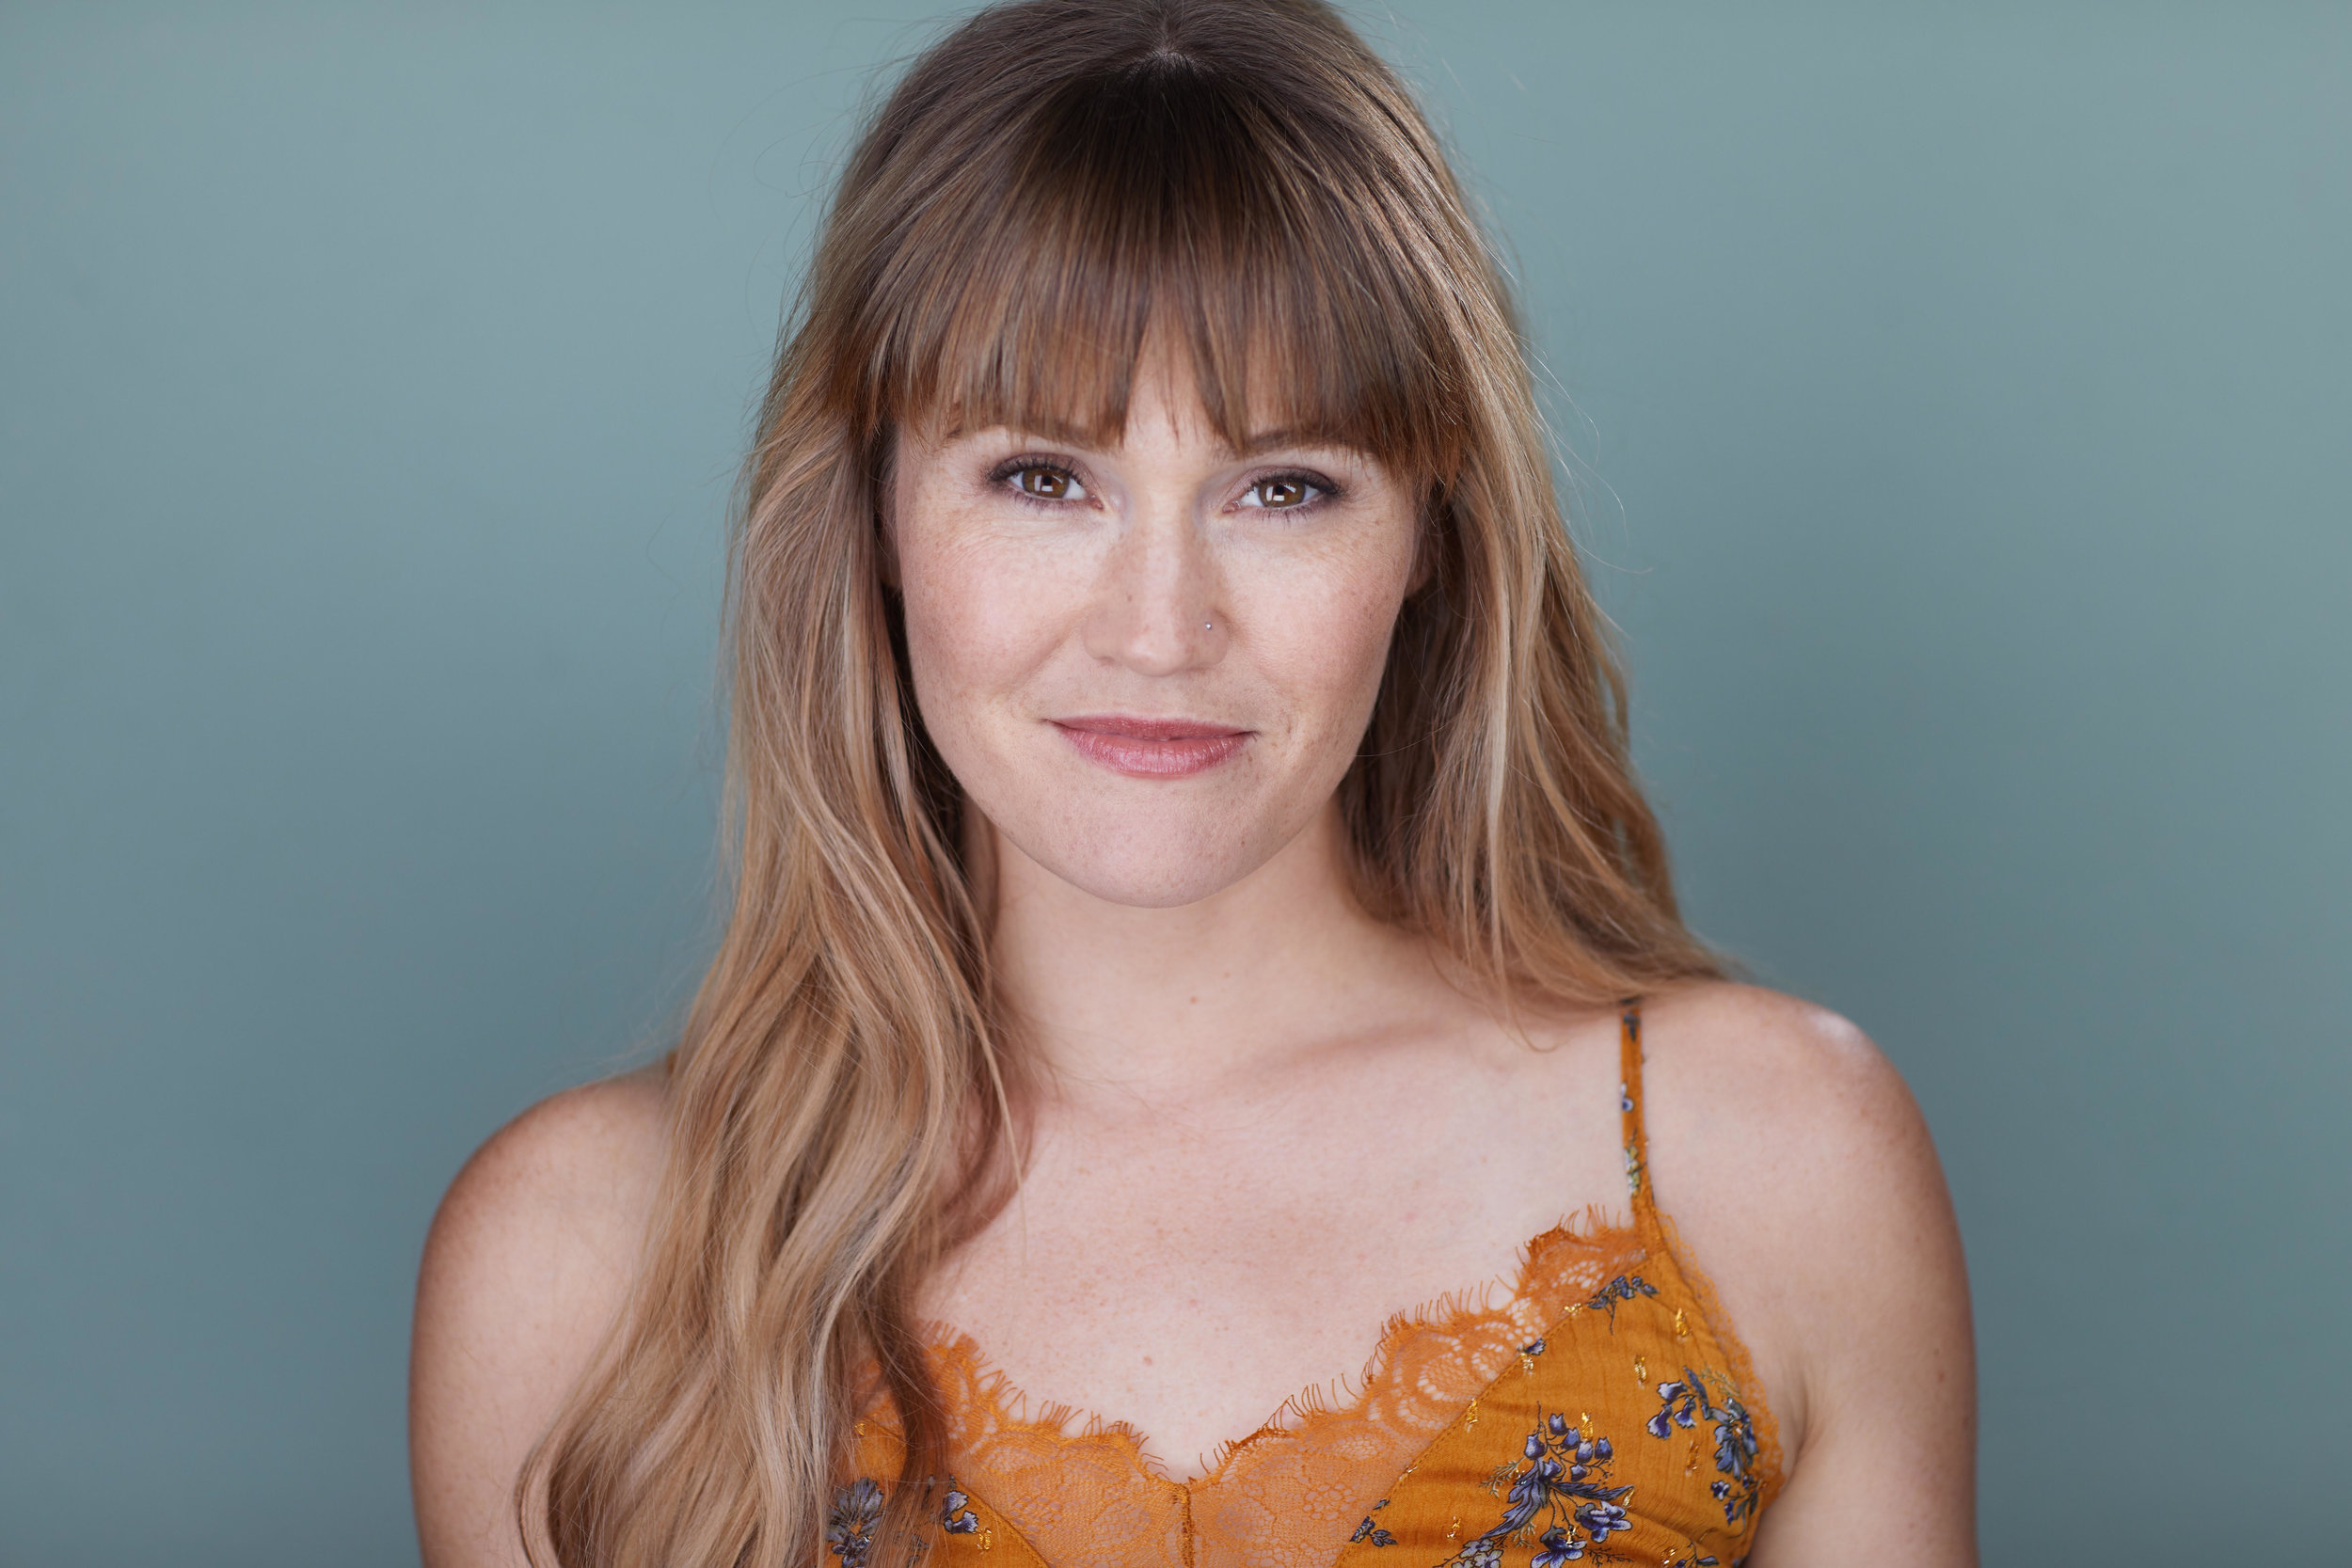 """""""…it's hard to get quality video of myself online. Now I have not only a beautiful, professional video…the work I've gotten from having my videos pays for itself! Best decision I've made!"""" - -Kristin Stokes, NYC Actor(Annabeth, Original Broadway Cast of """"The Lightning Thief: The Percy Jackson Musical"""")"""